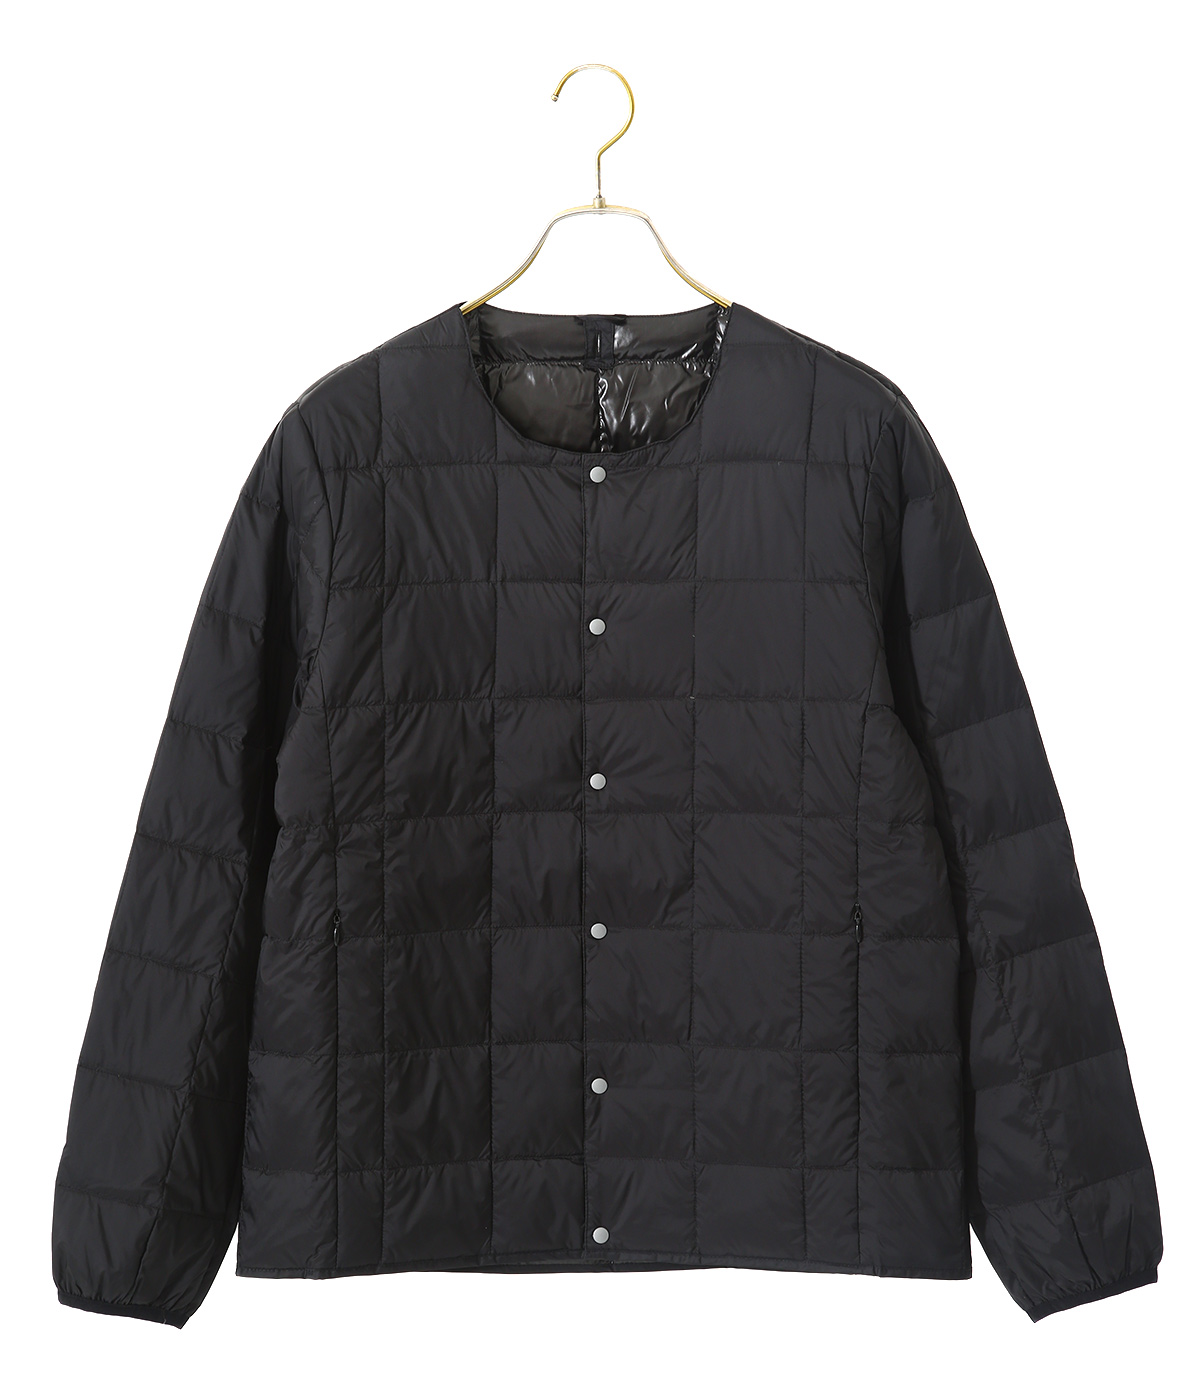 CREW NECK BUTTON DOWN JACKET MENS